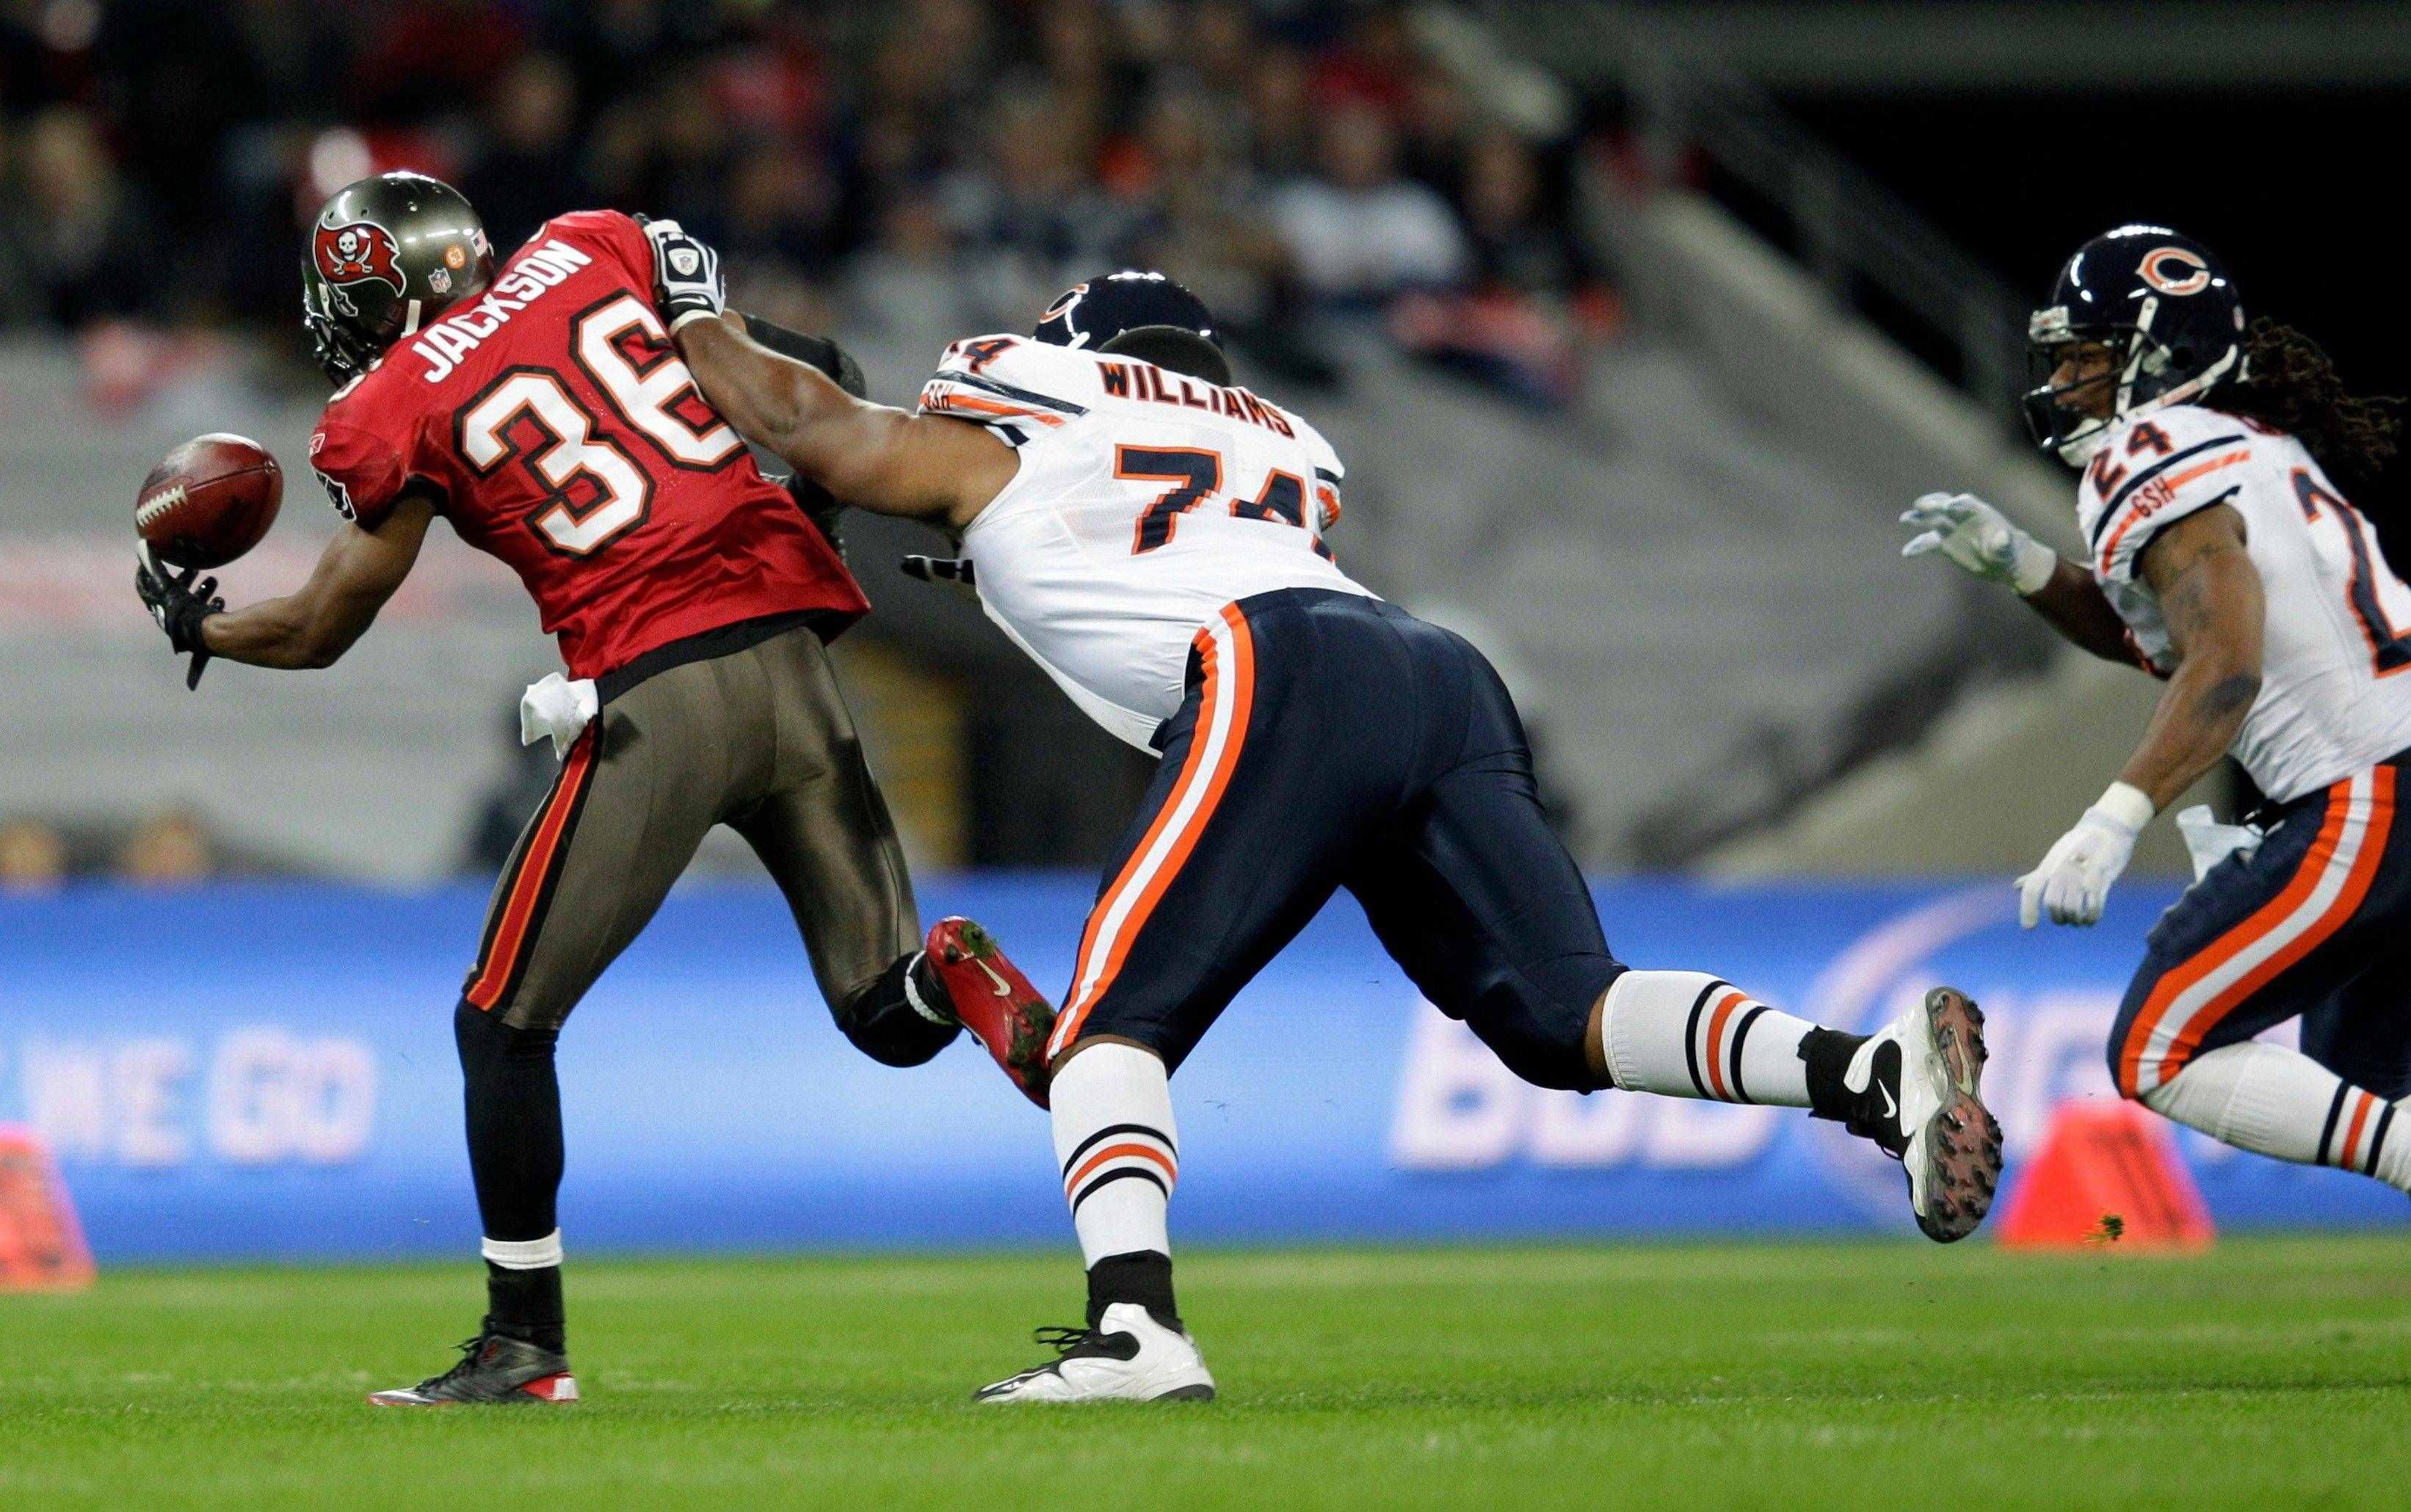 Chicago Bears guard Chris Williams tries to stop Tampa Bay Buccaneers defensive back Tanard Jackson as he intercepts a pass intended for Chicago Bears running back Marion Barber, right, during the first half.